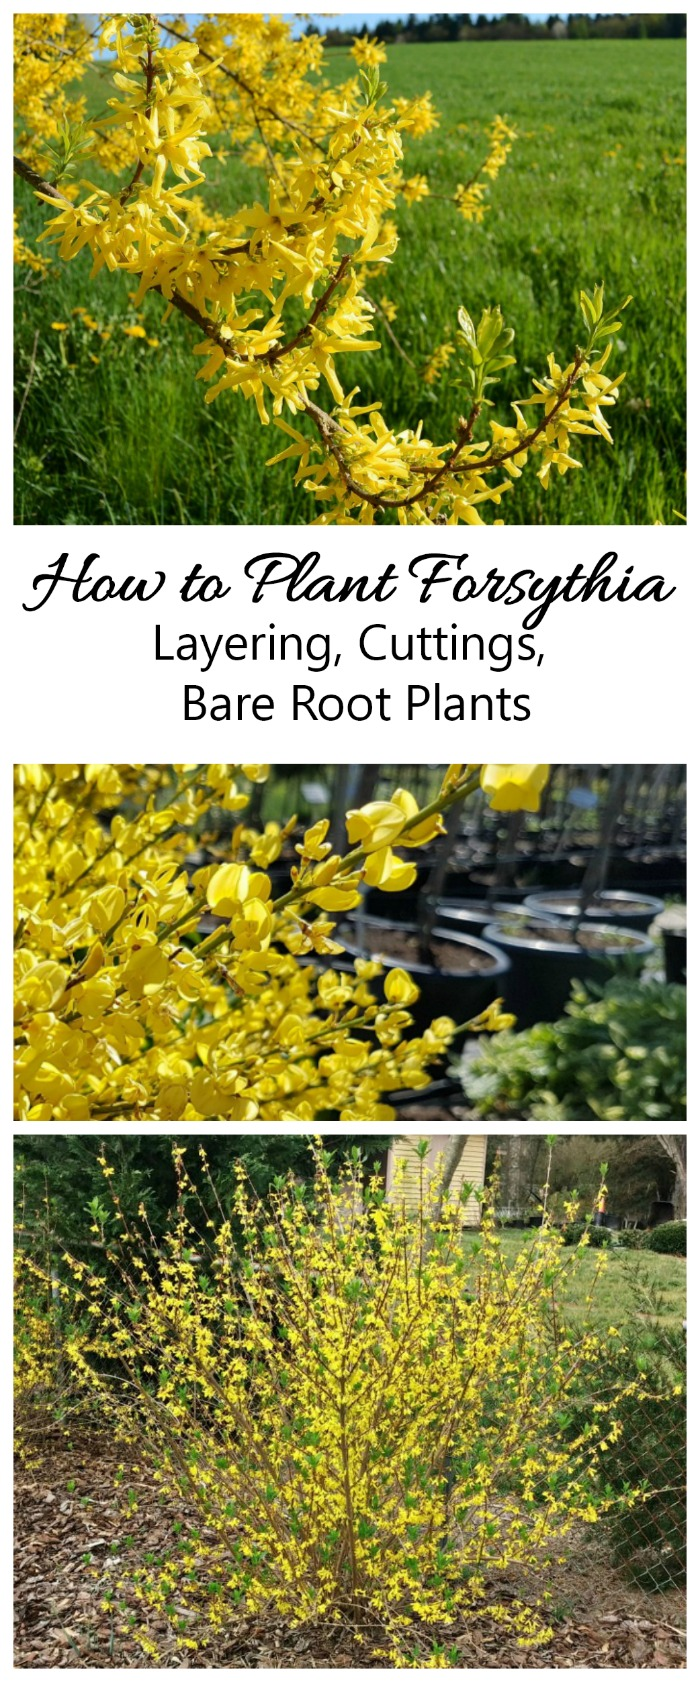 Forsythia is one of the first plants to bloom in spring. These tips will show you how and when to plant this perennial plus how to layer, take cuttings and more.